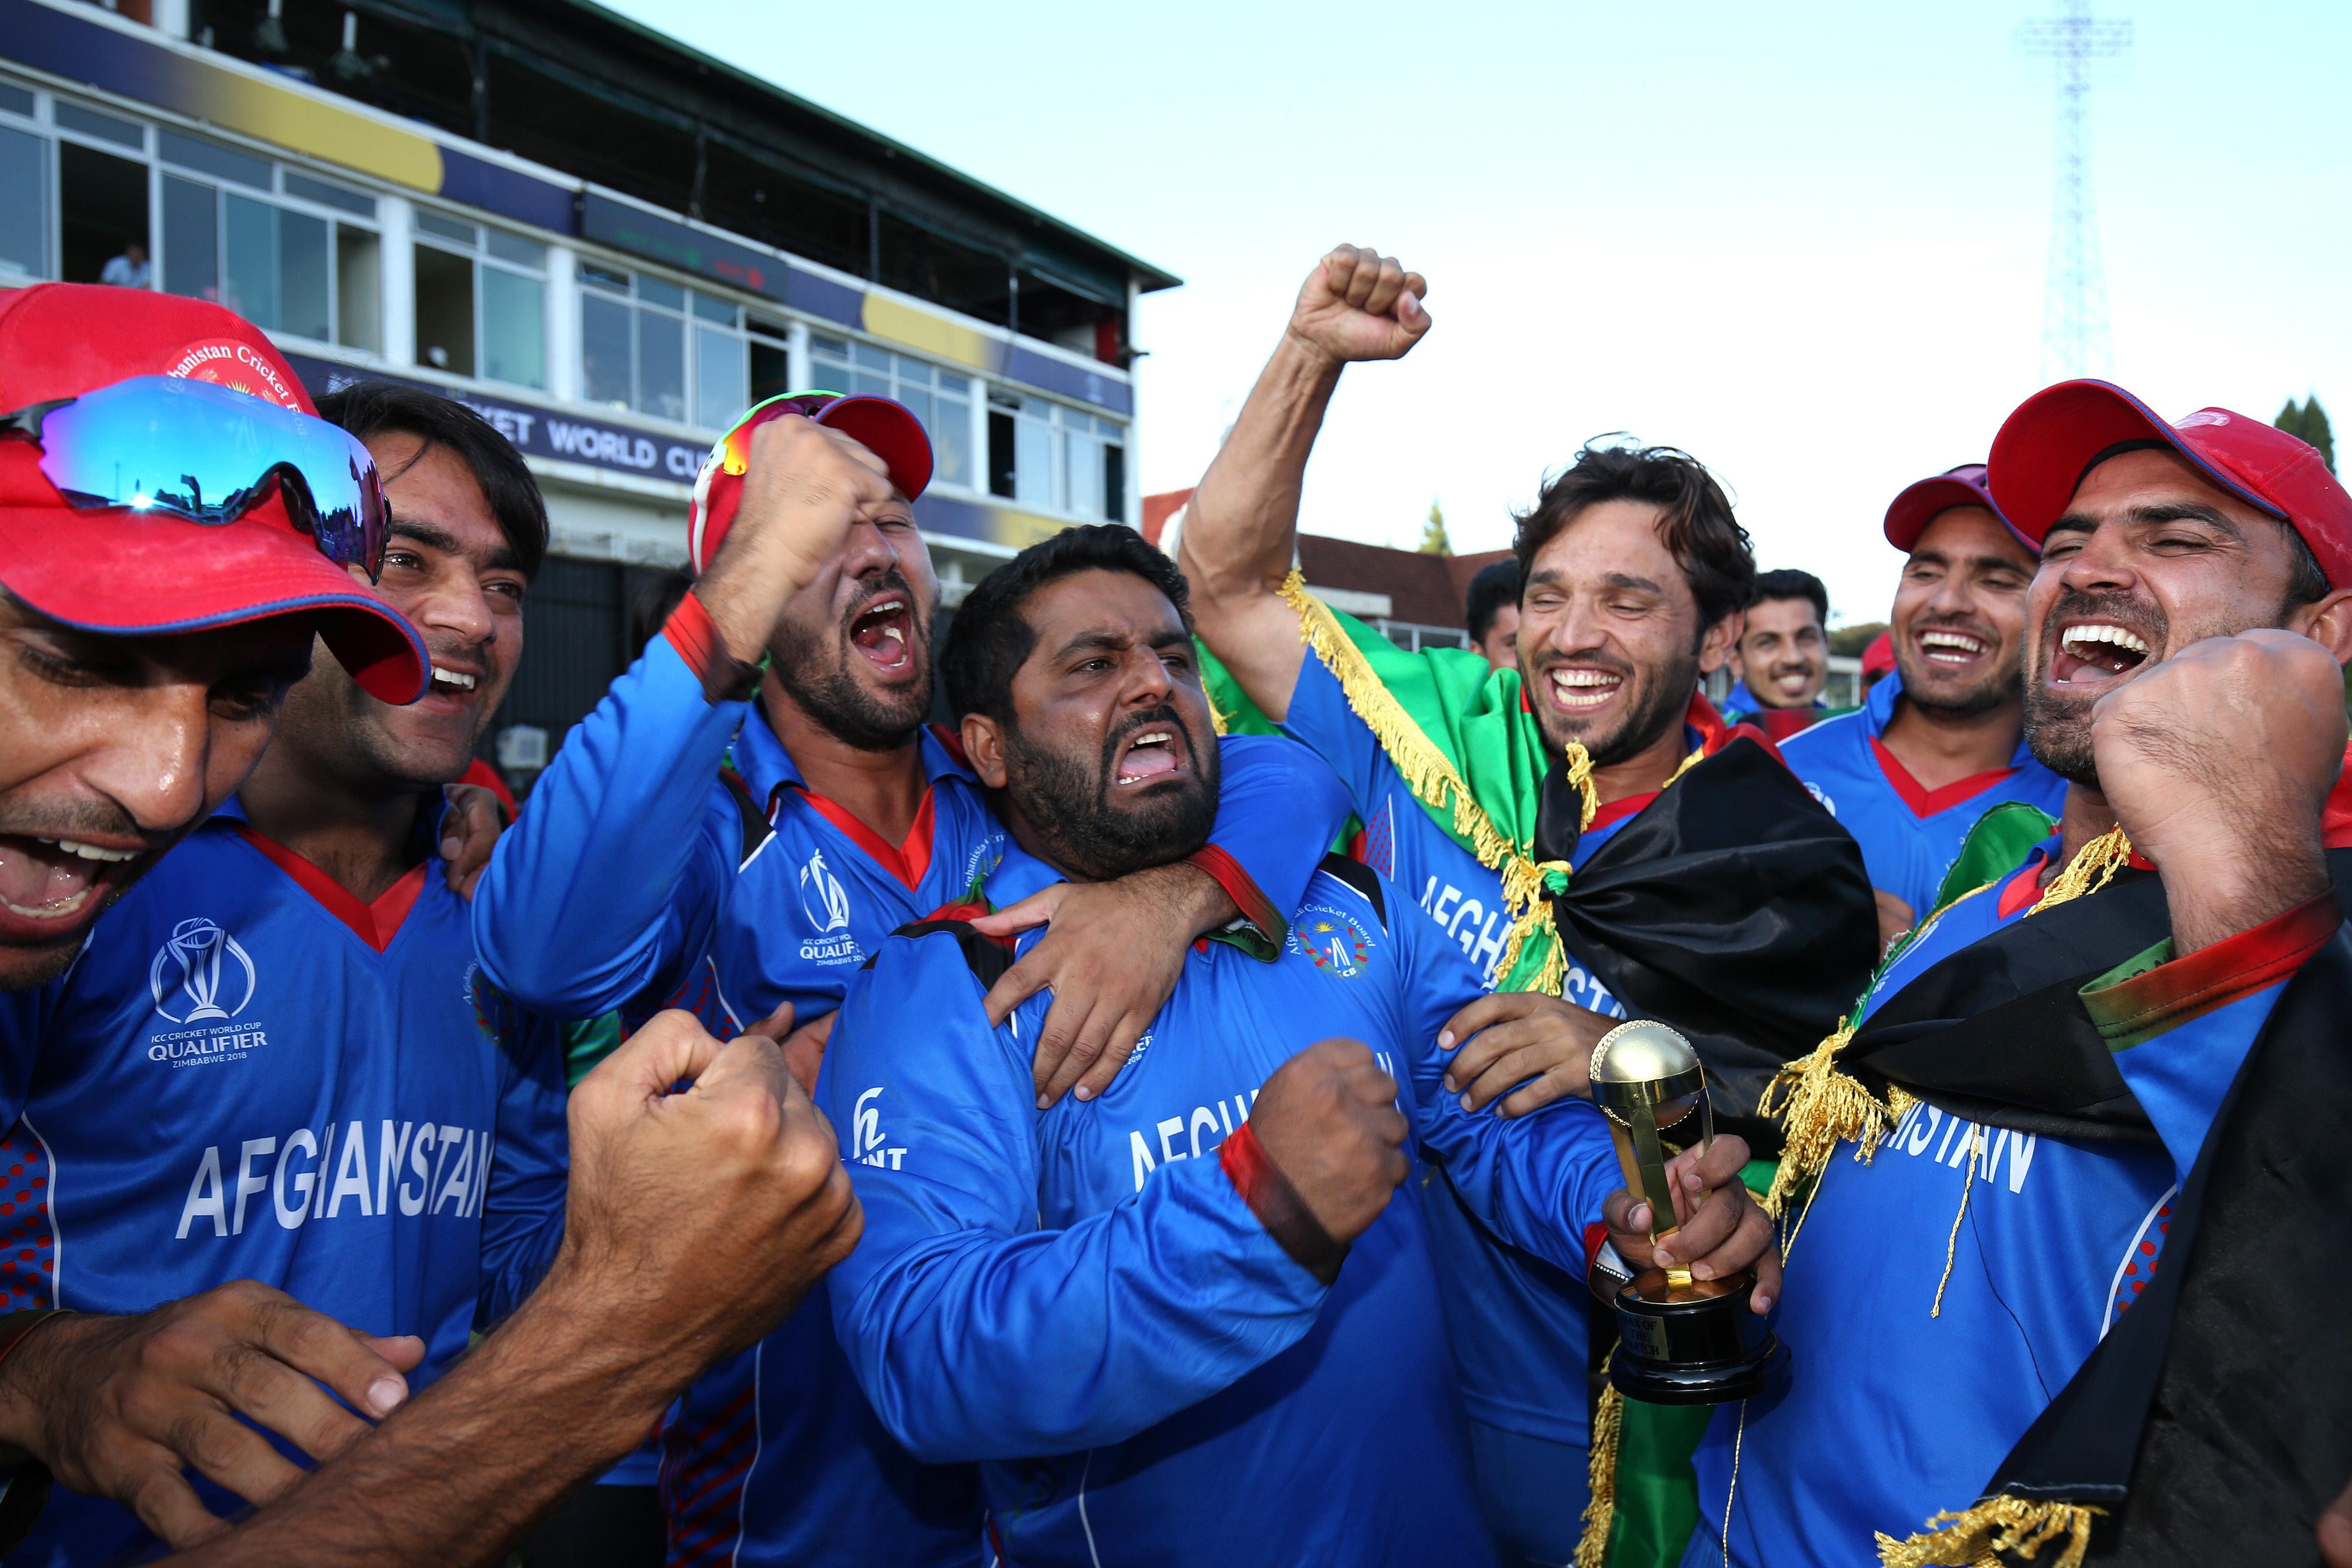 Afghanistan rejoiced as they became the tenth and final team to qualify